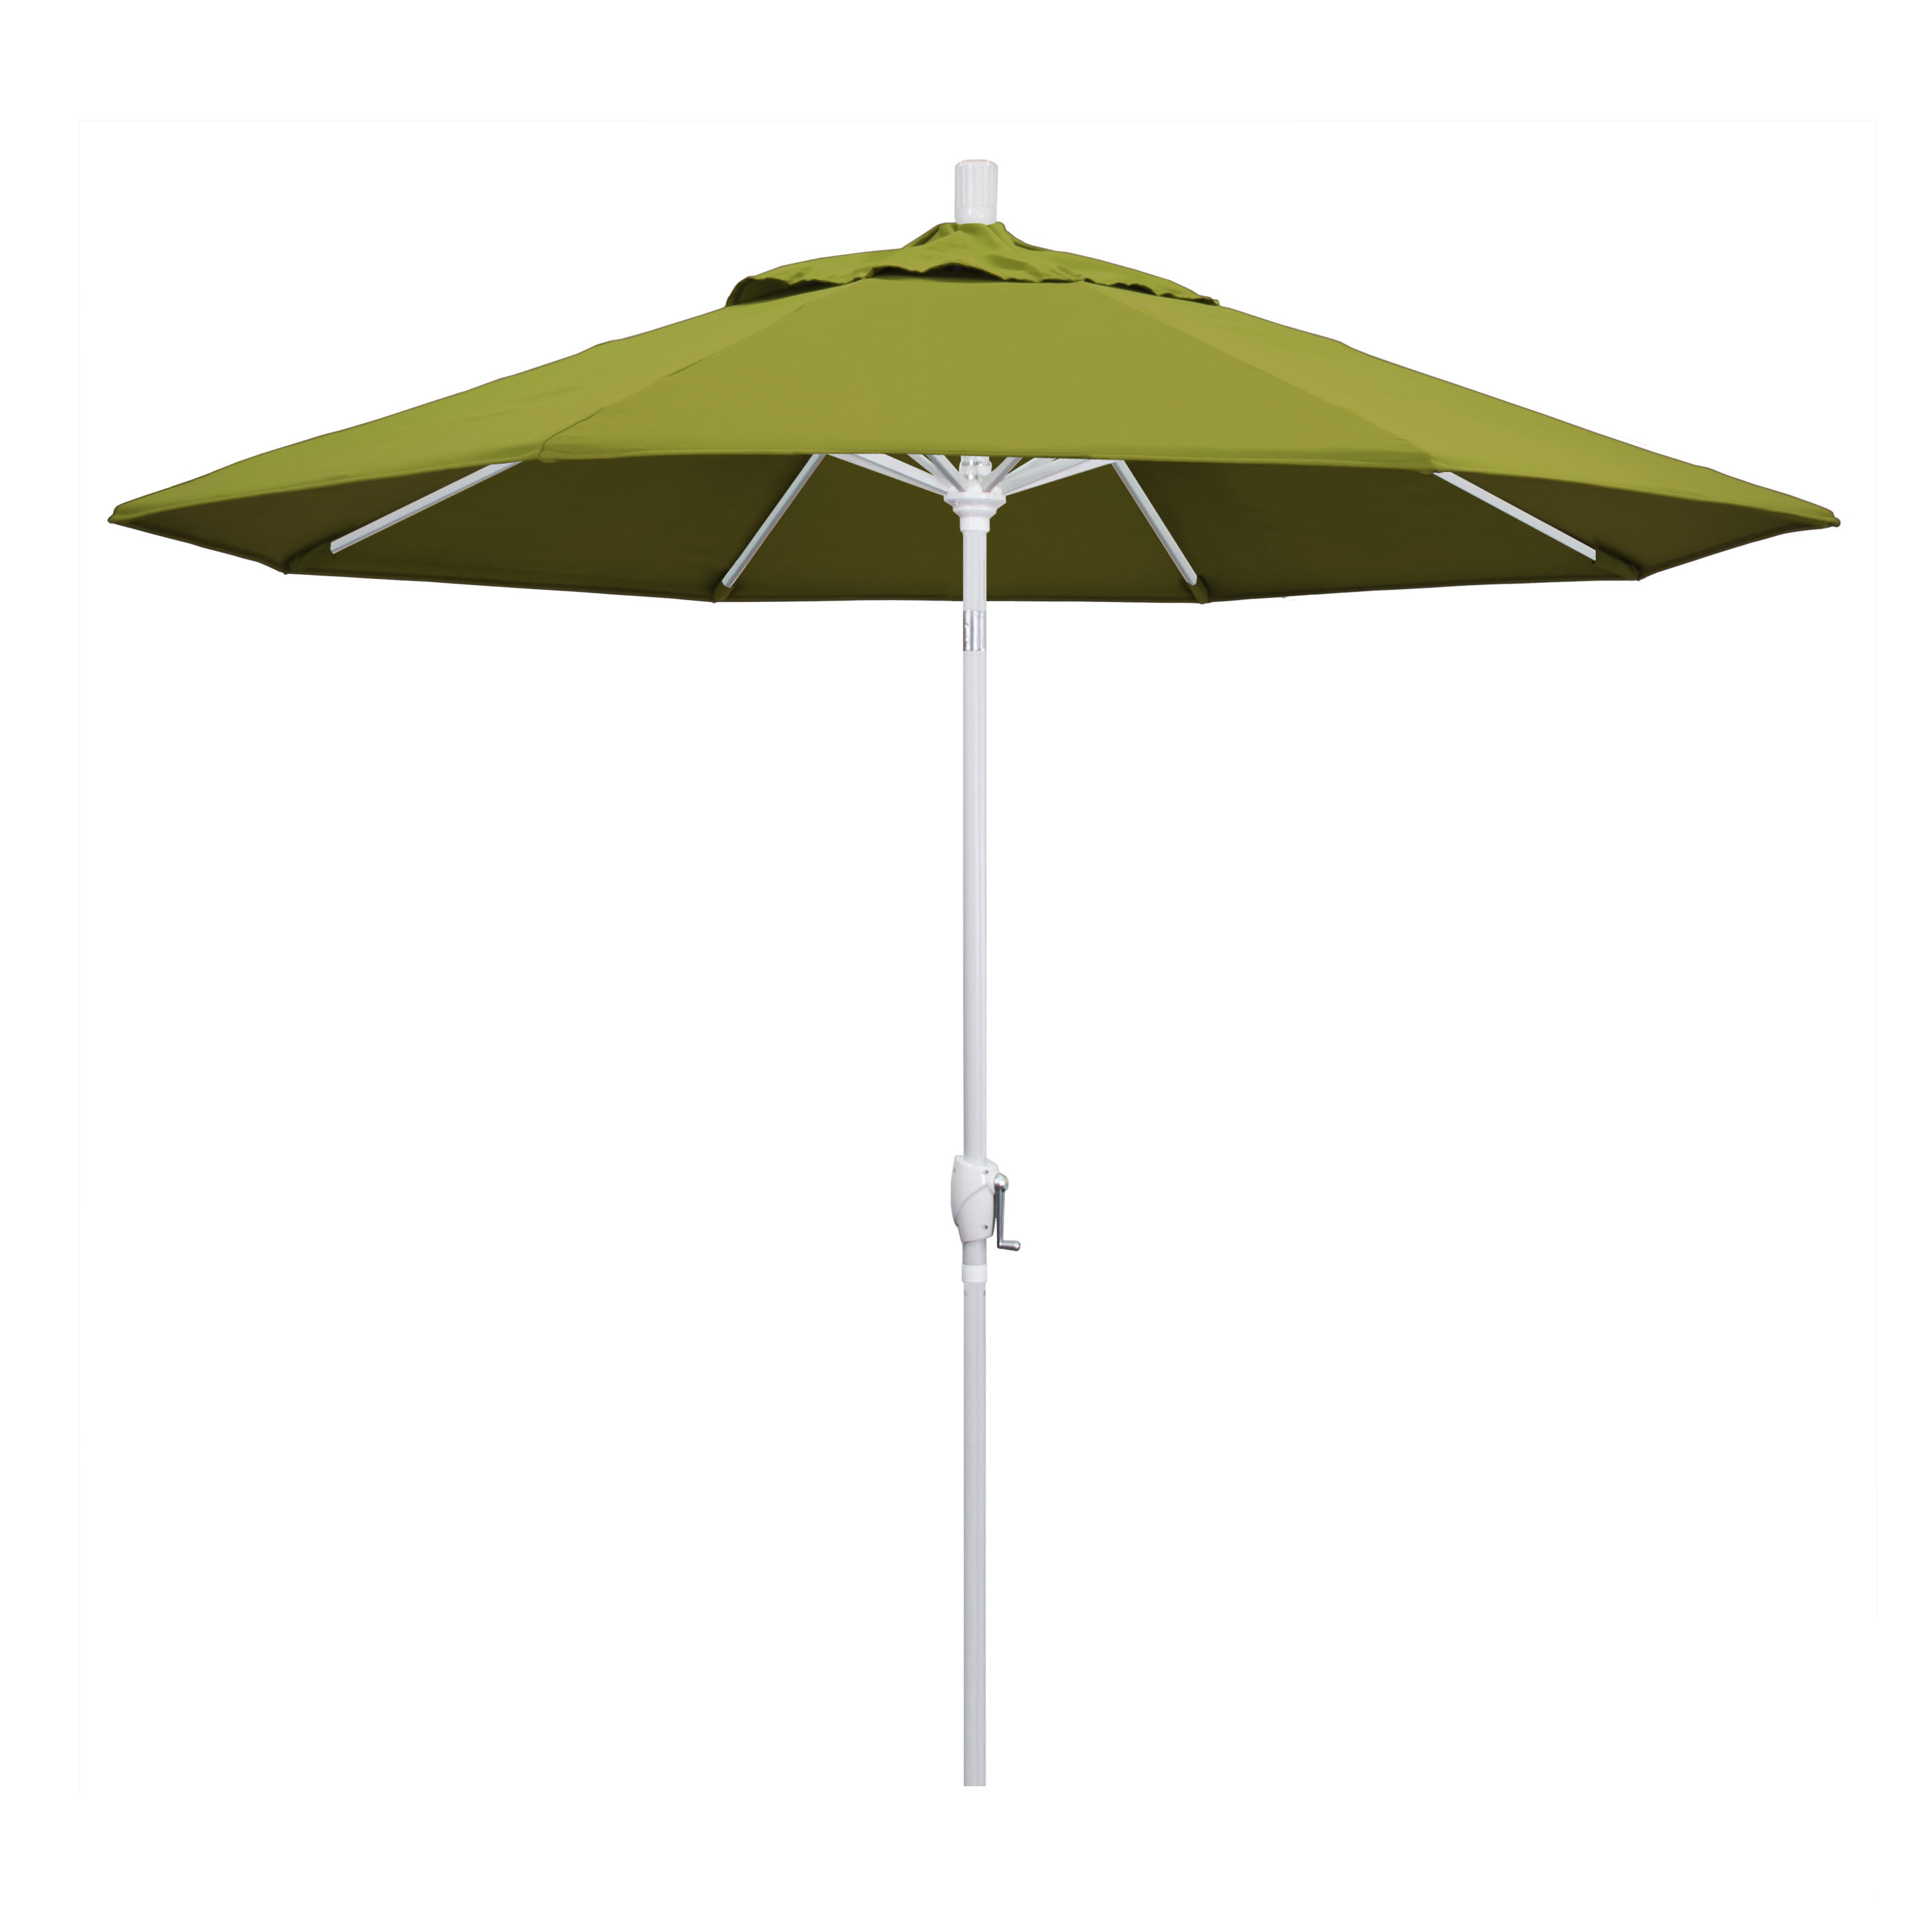 Sheehan Market Umbrellas Pertaining To Well Known Cello 9' Market Umbrella (View 7 of 20)